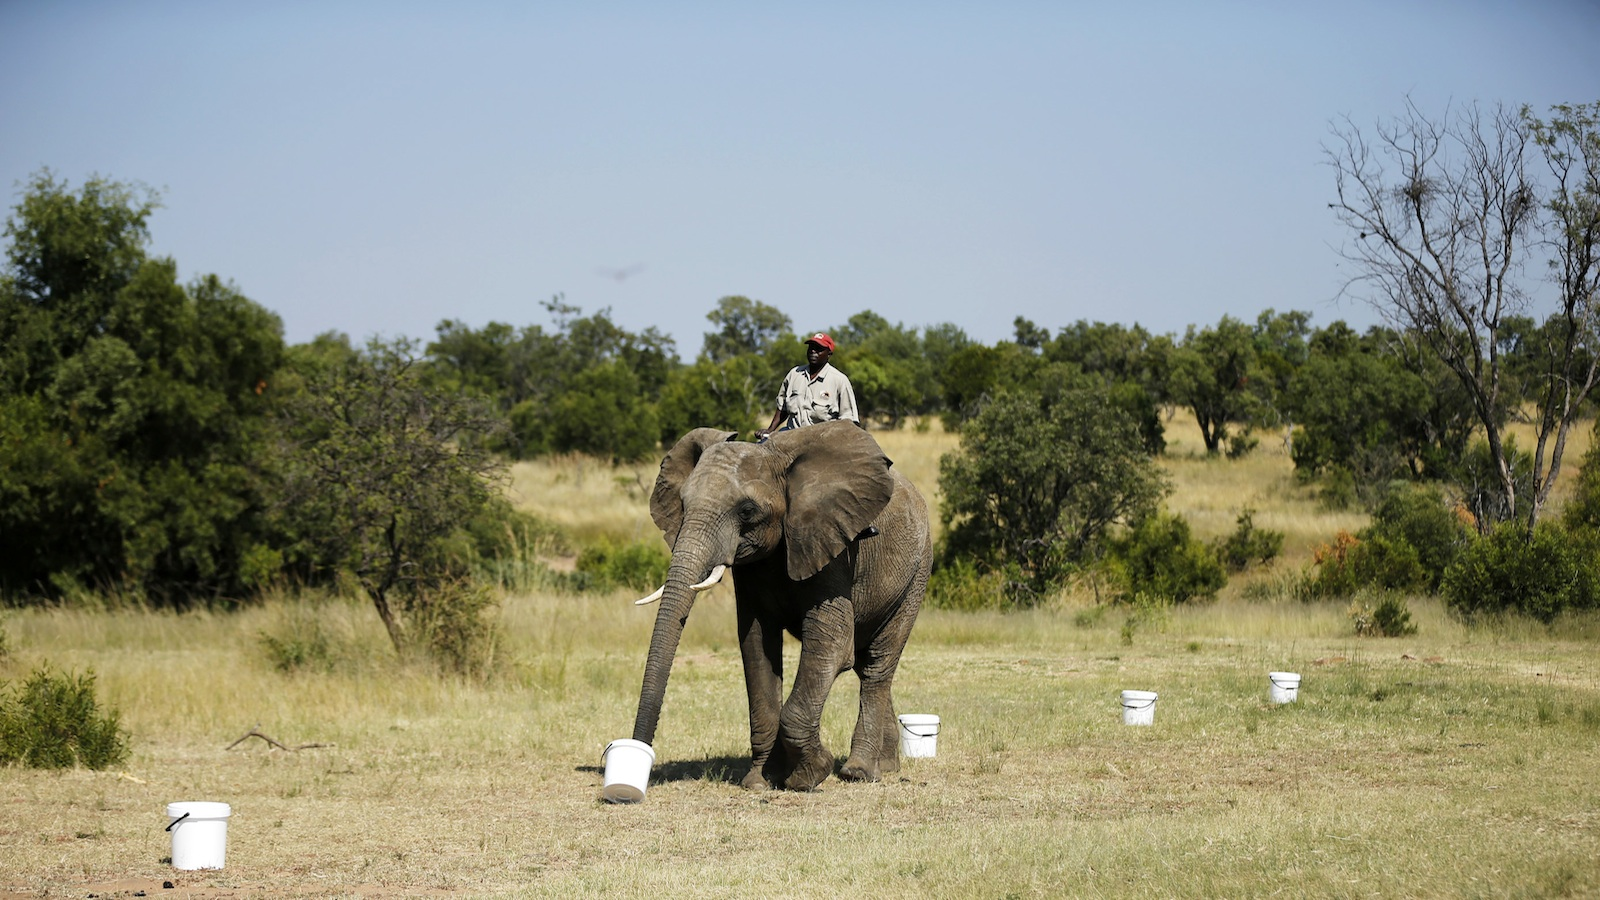 A ranger sits astride an African elephant performing a biodetection drill.